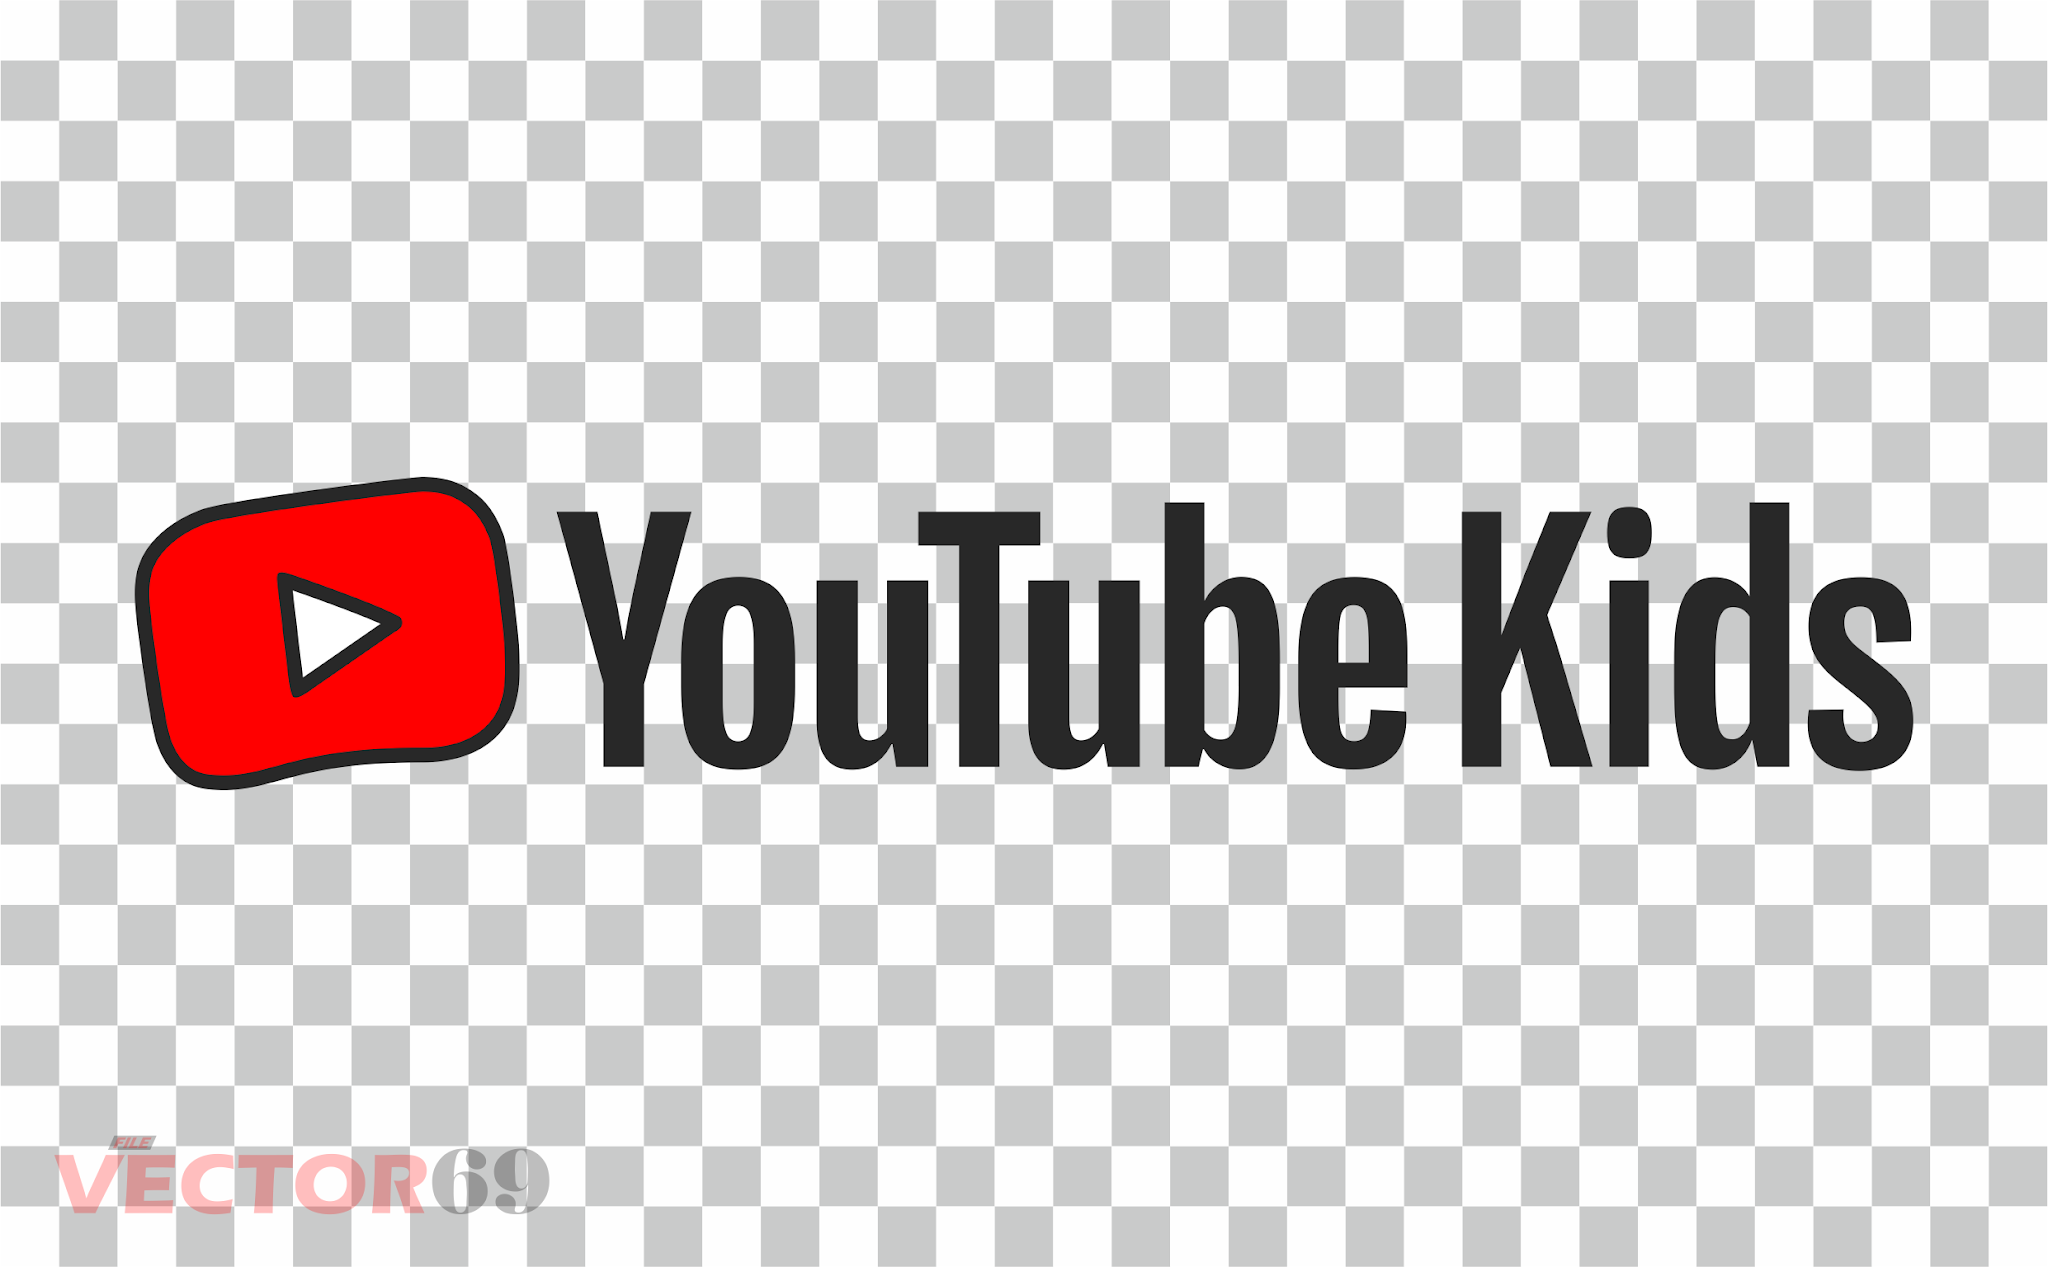 Youtube Kids Logo - Download Vector File PNG (Portable Network Graphics)